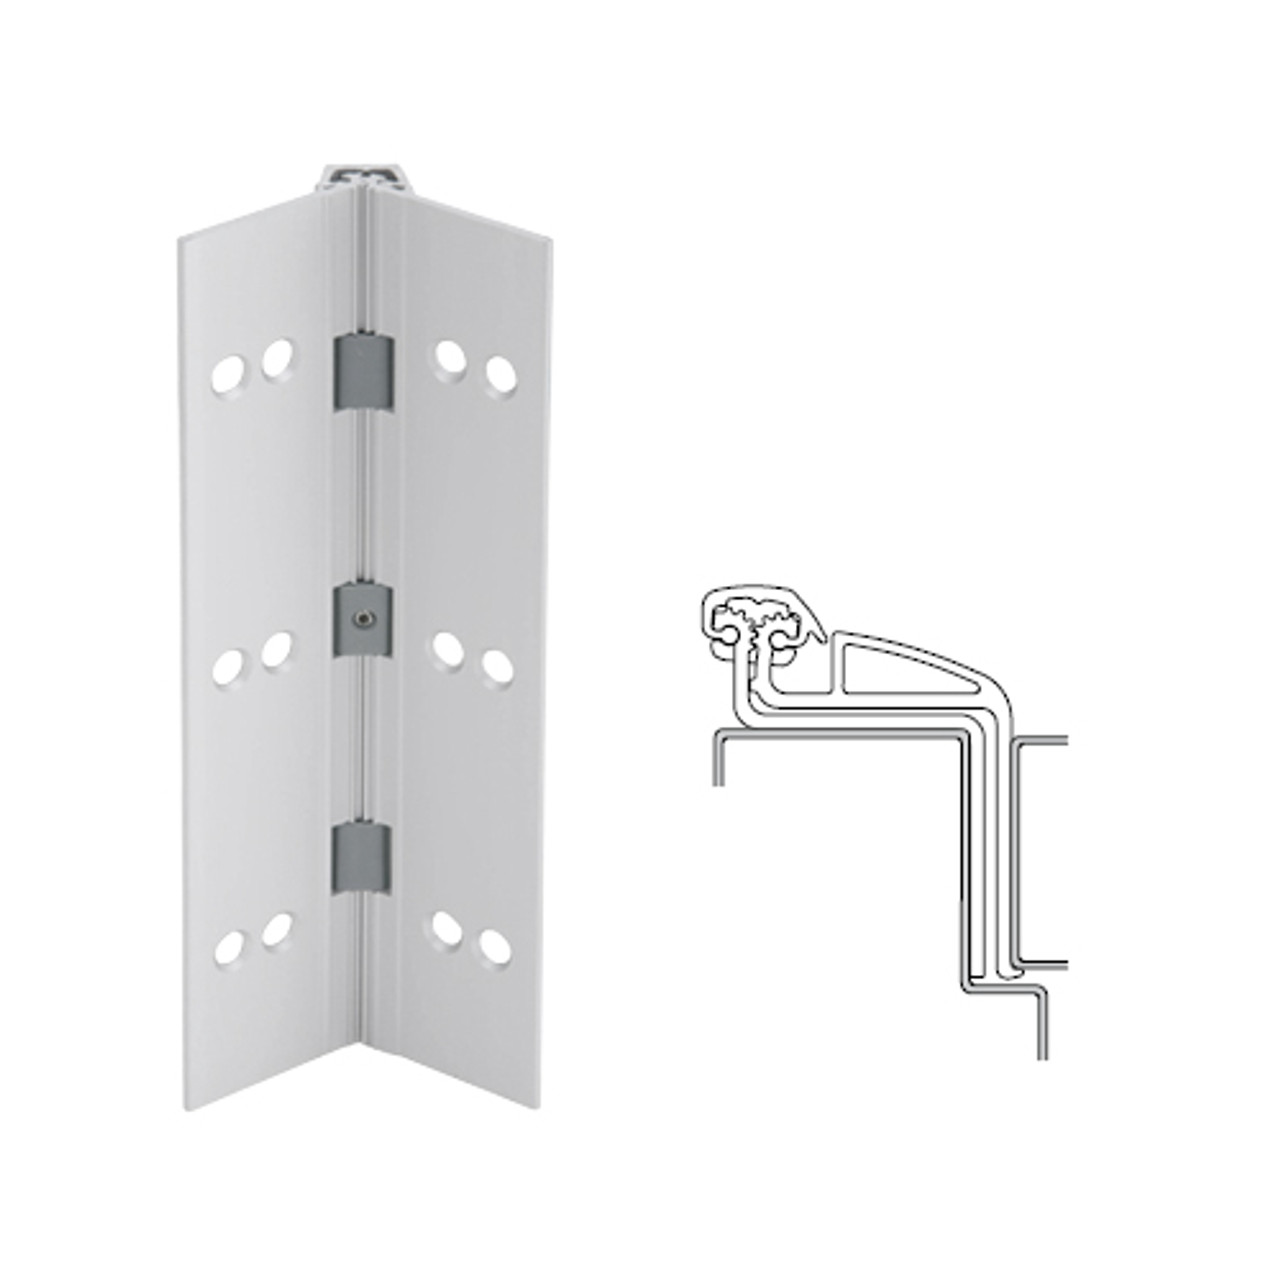 041XY-US28-95 IVES Full Mortise Continuous Geared Hinges in Satin Aluminum